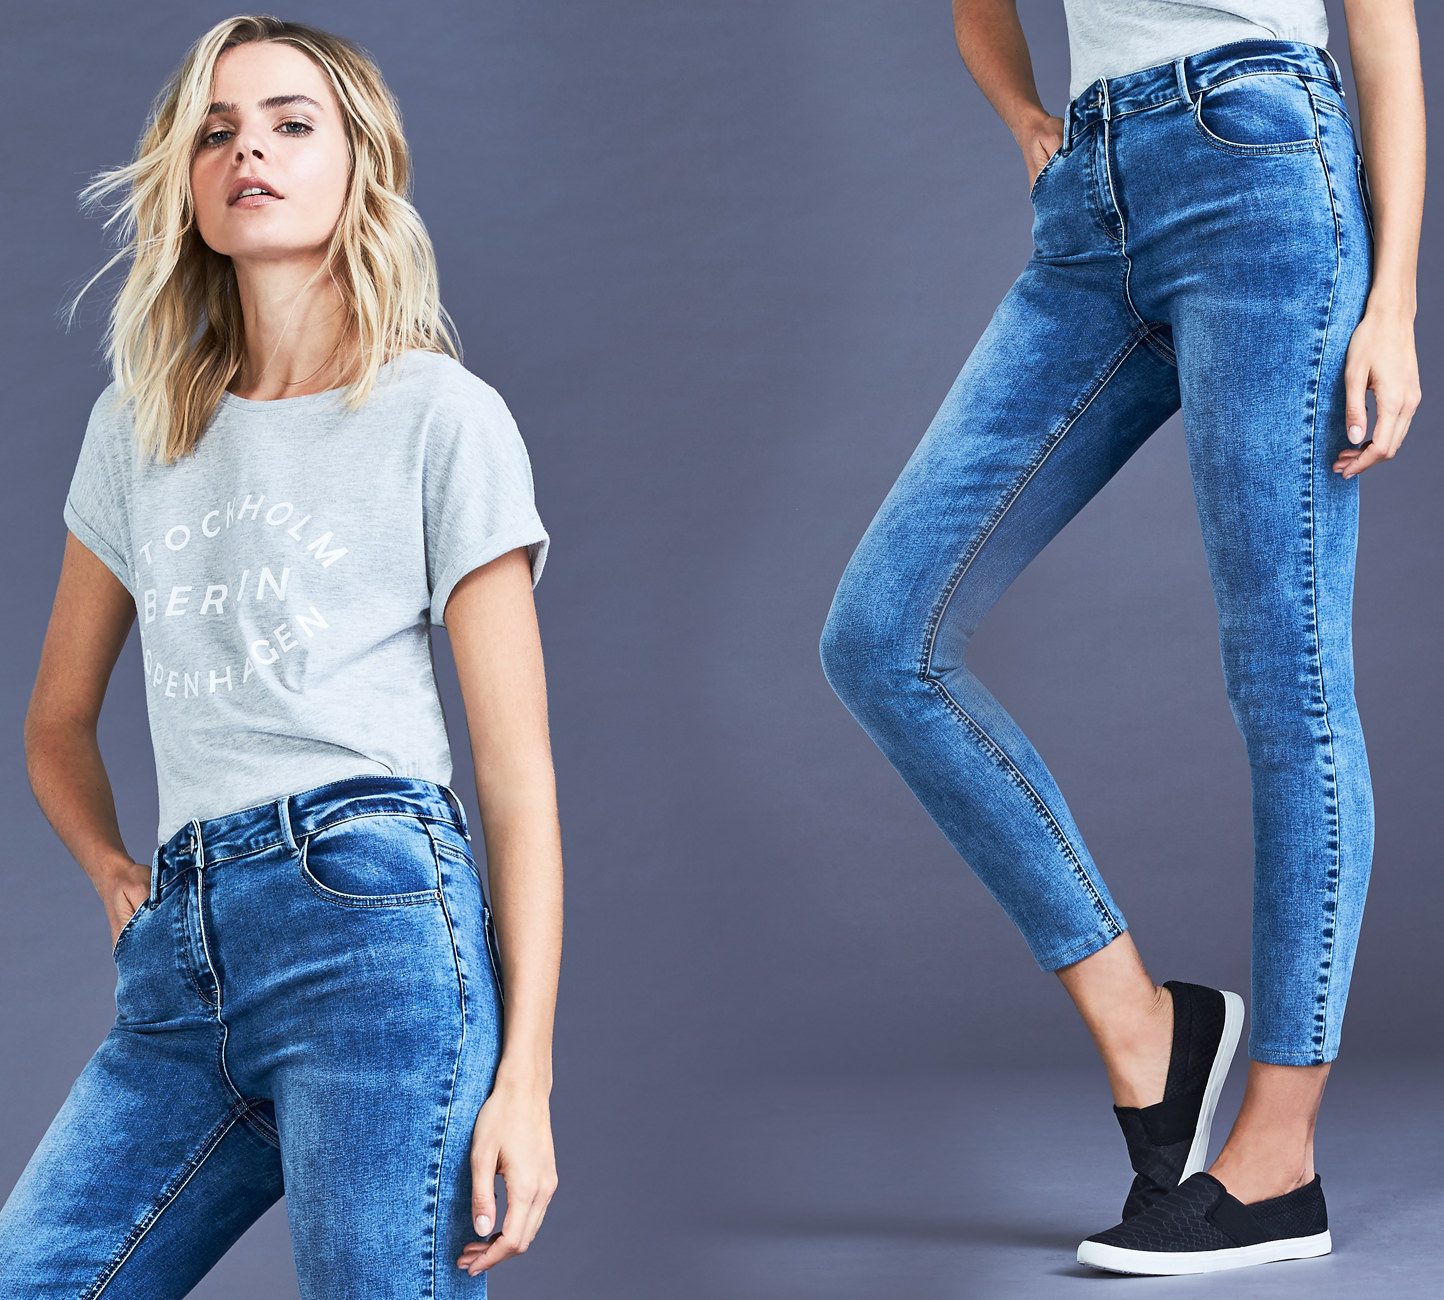 Women's Skinny Fit Jeans - Shop Now